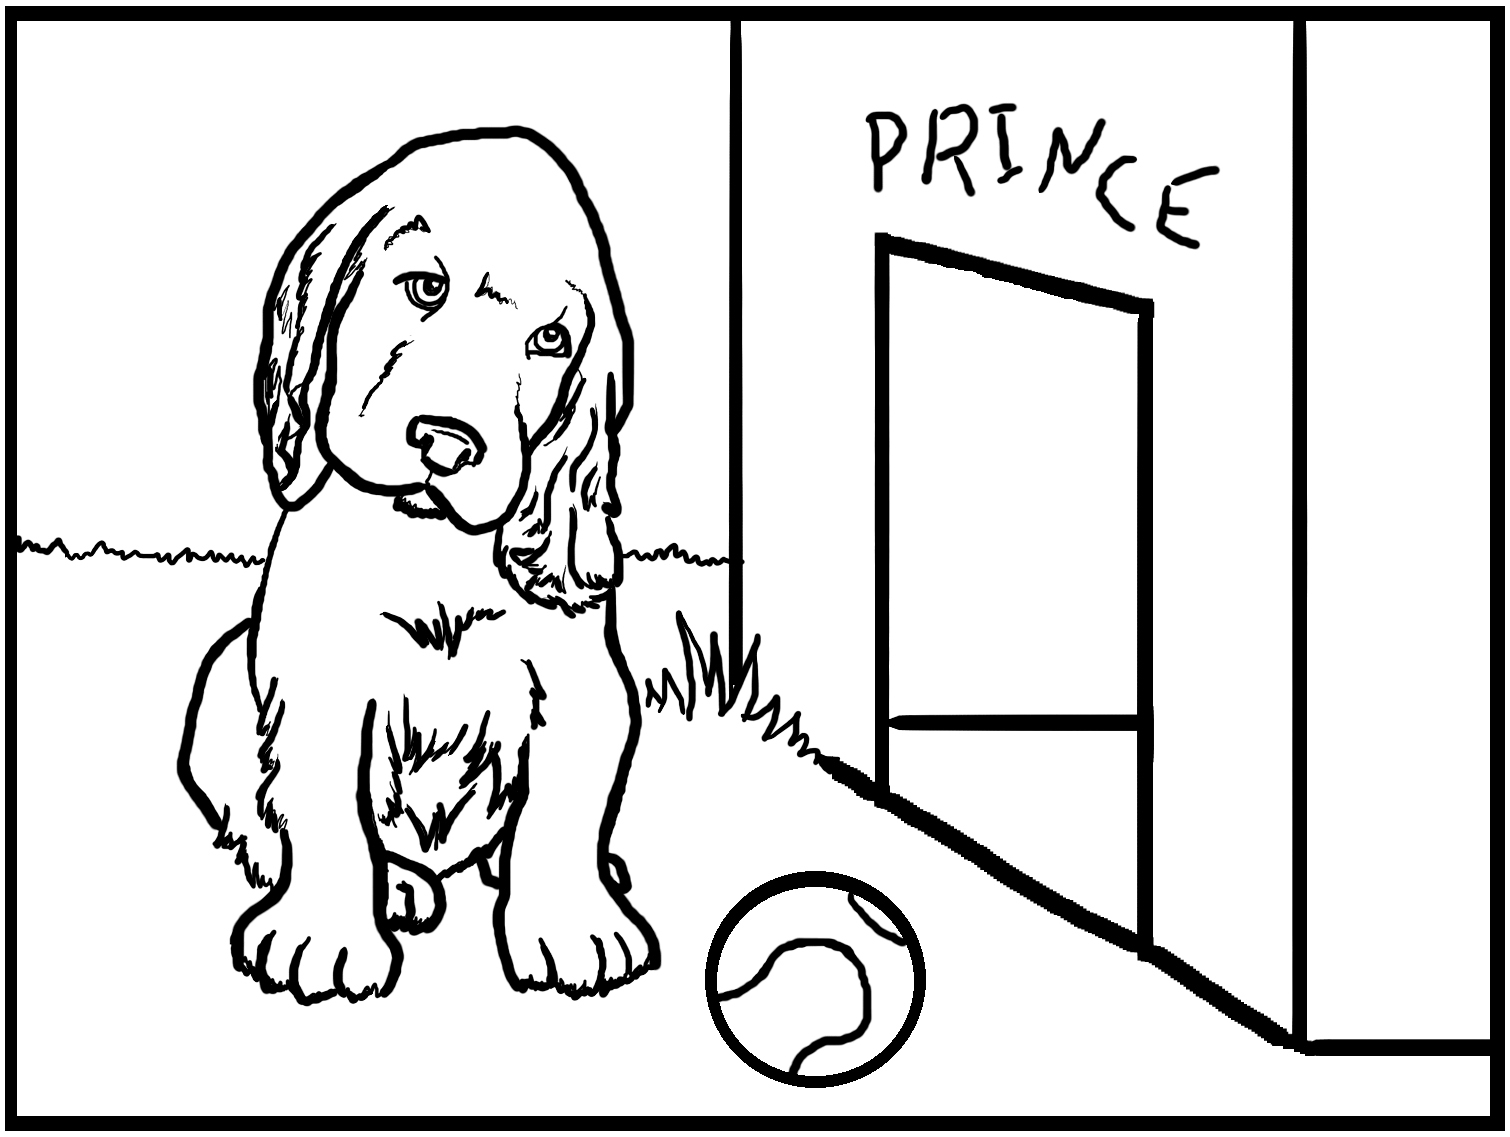 printable dog coloring pages for kids - Coloring Pages For Kids Printable